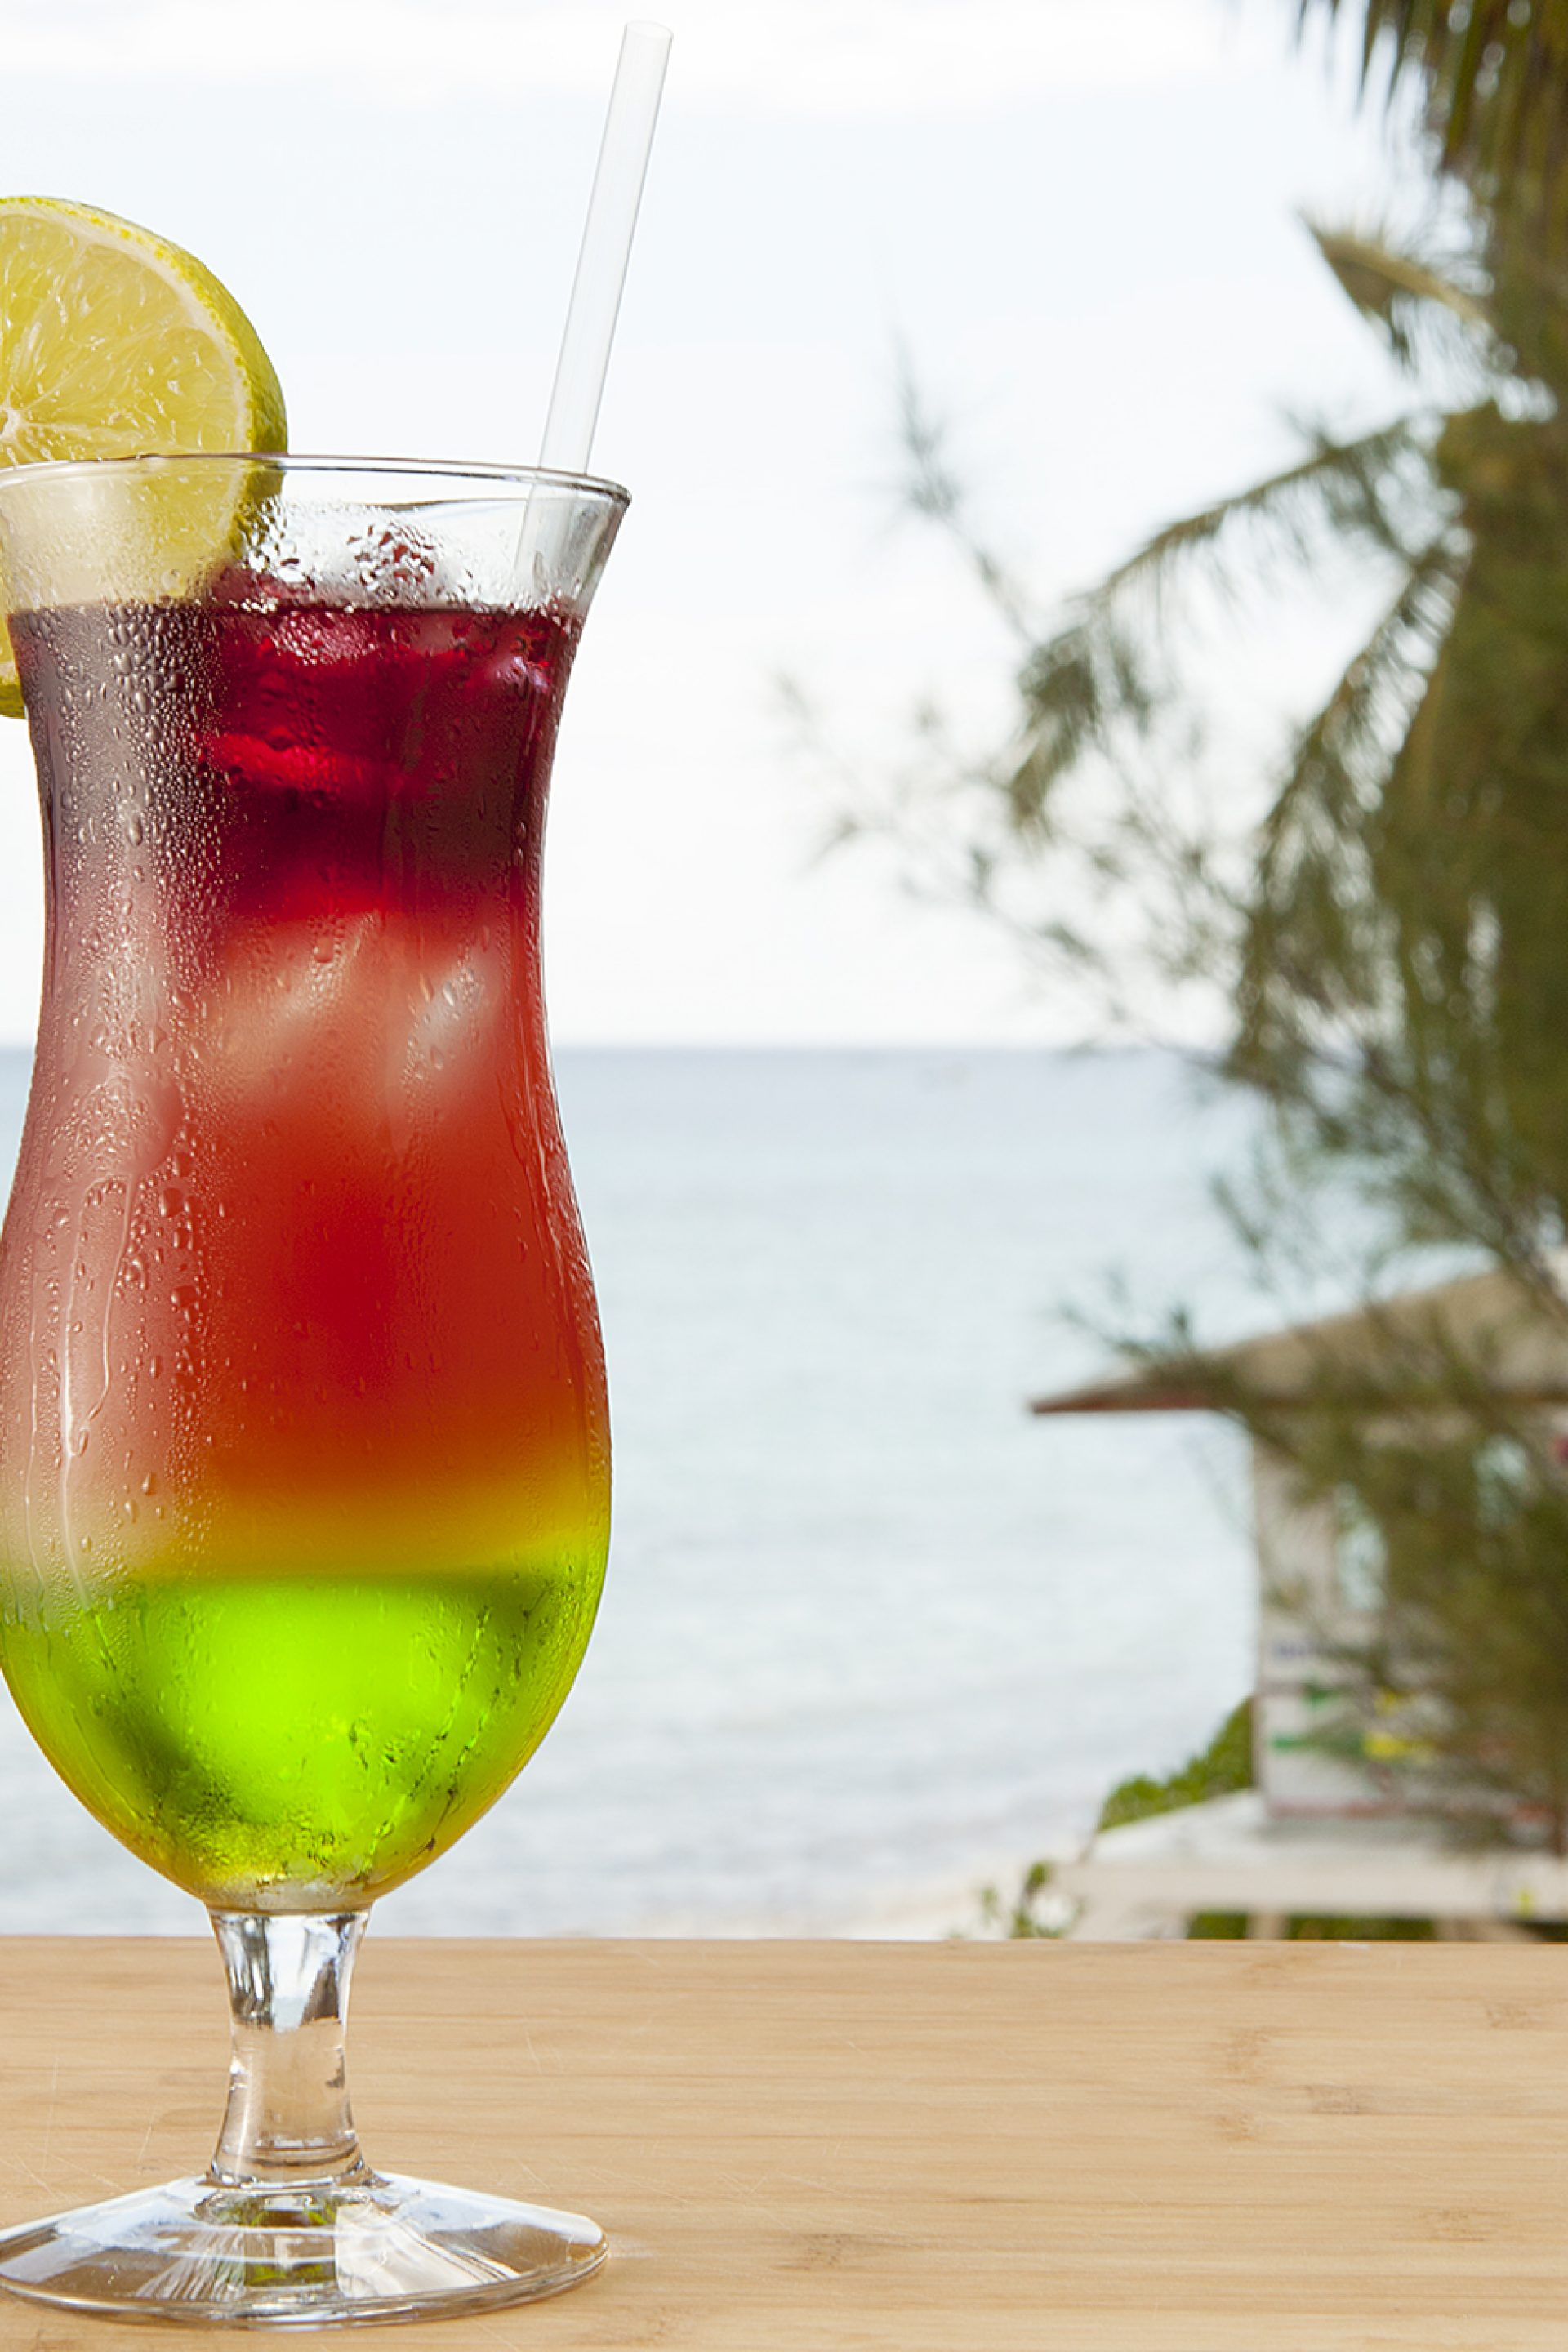 Experience paradise with island cocktails on private balcony at Mahekal Beach Resort